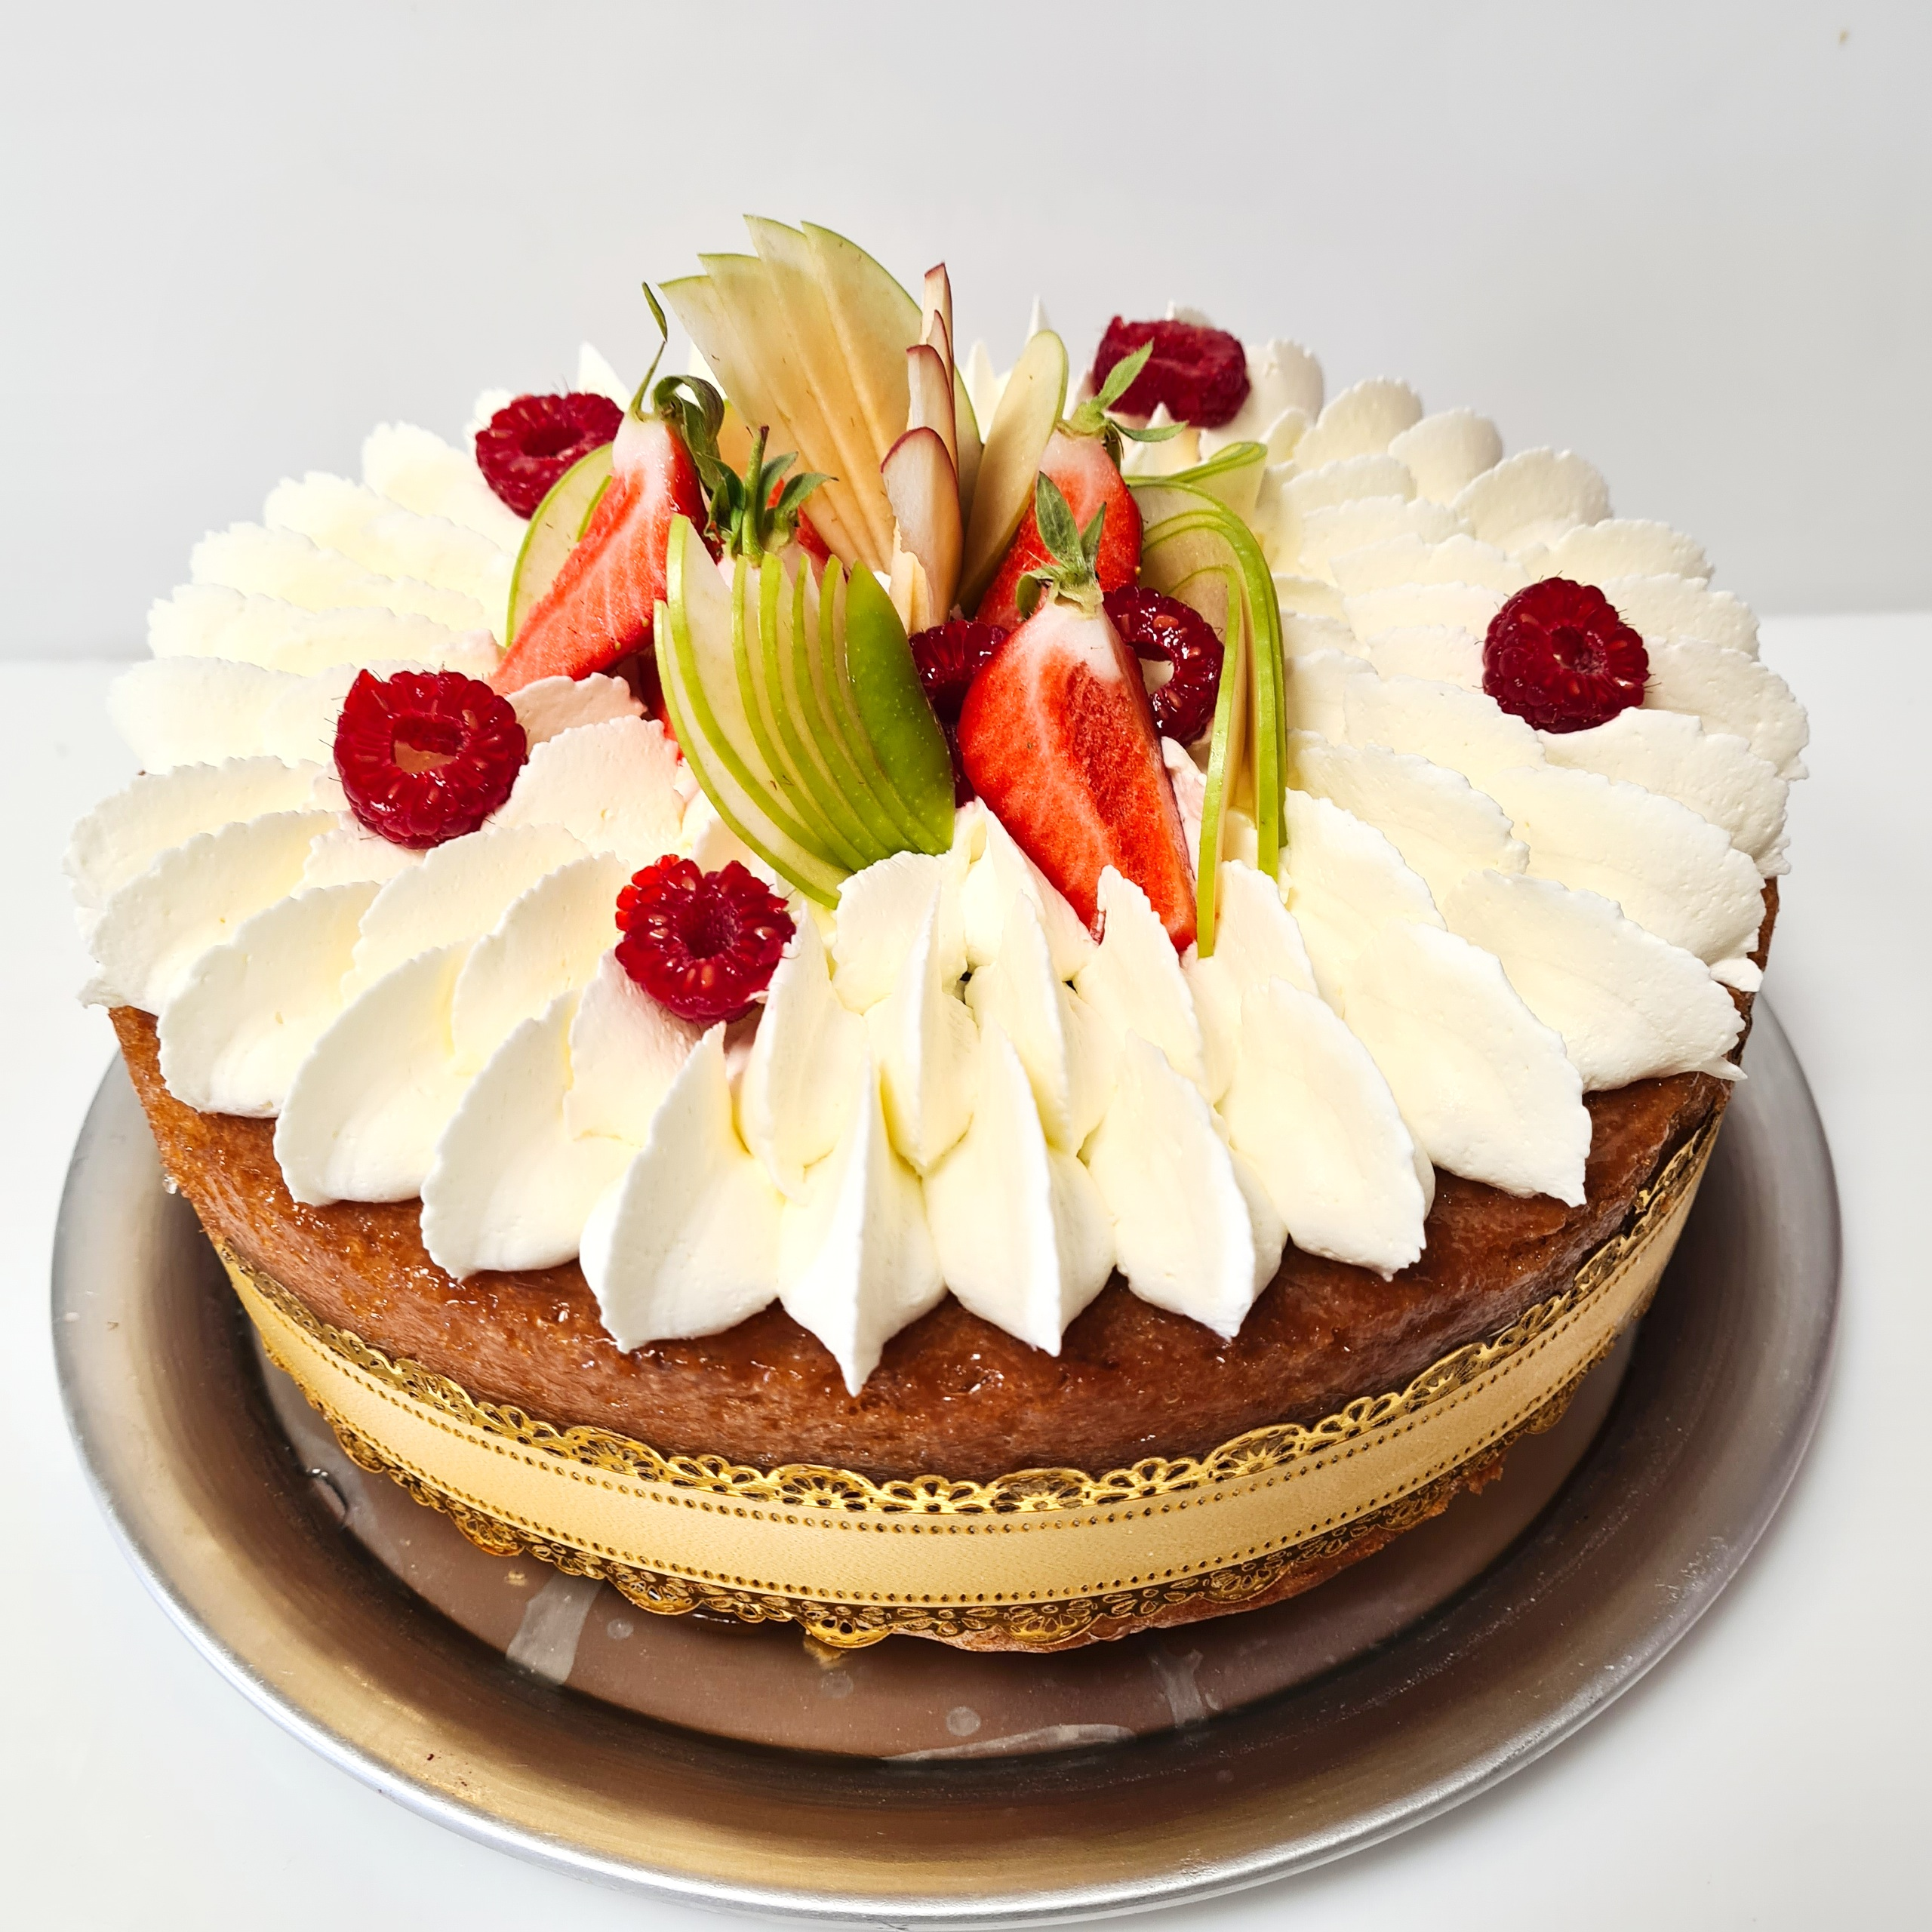 Pâte a baba, rhum, chantilly, fruis frais 4 pers. 22 € 6 pers. 33 € 8 pers. 44 € 10 pers. ou plus, nous contacter